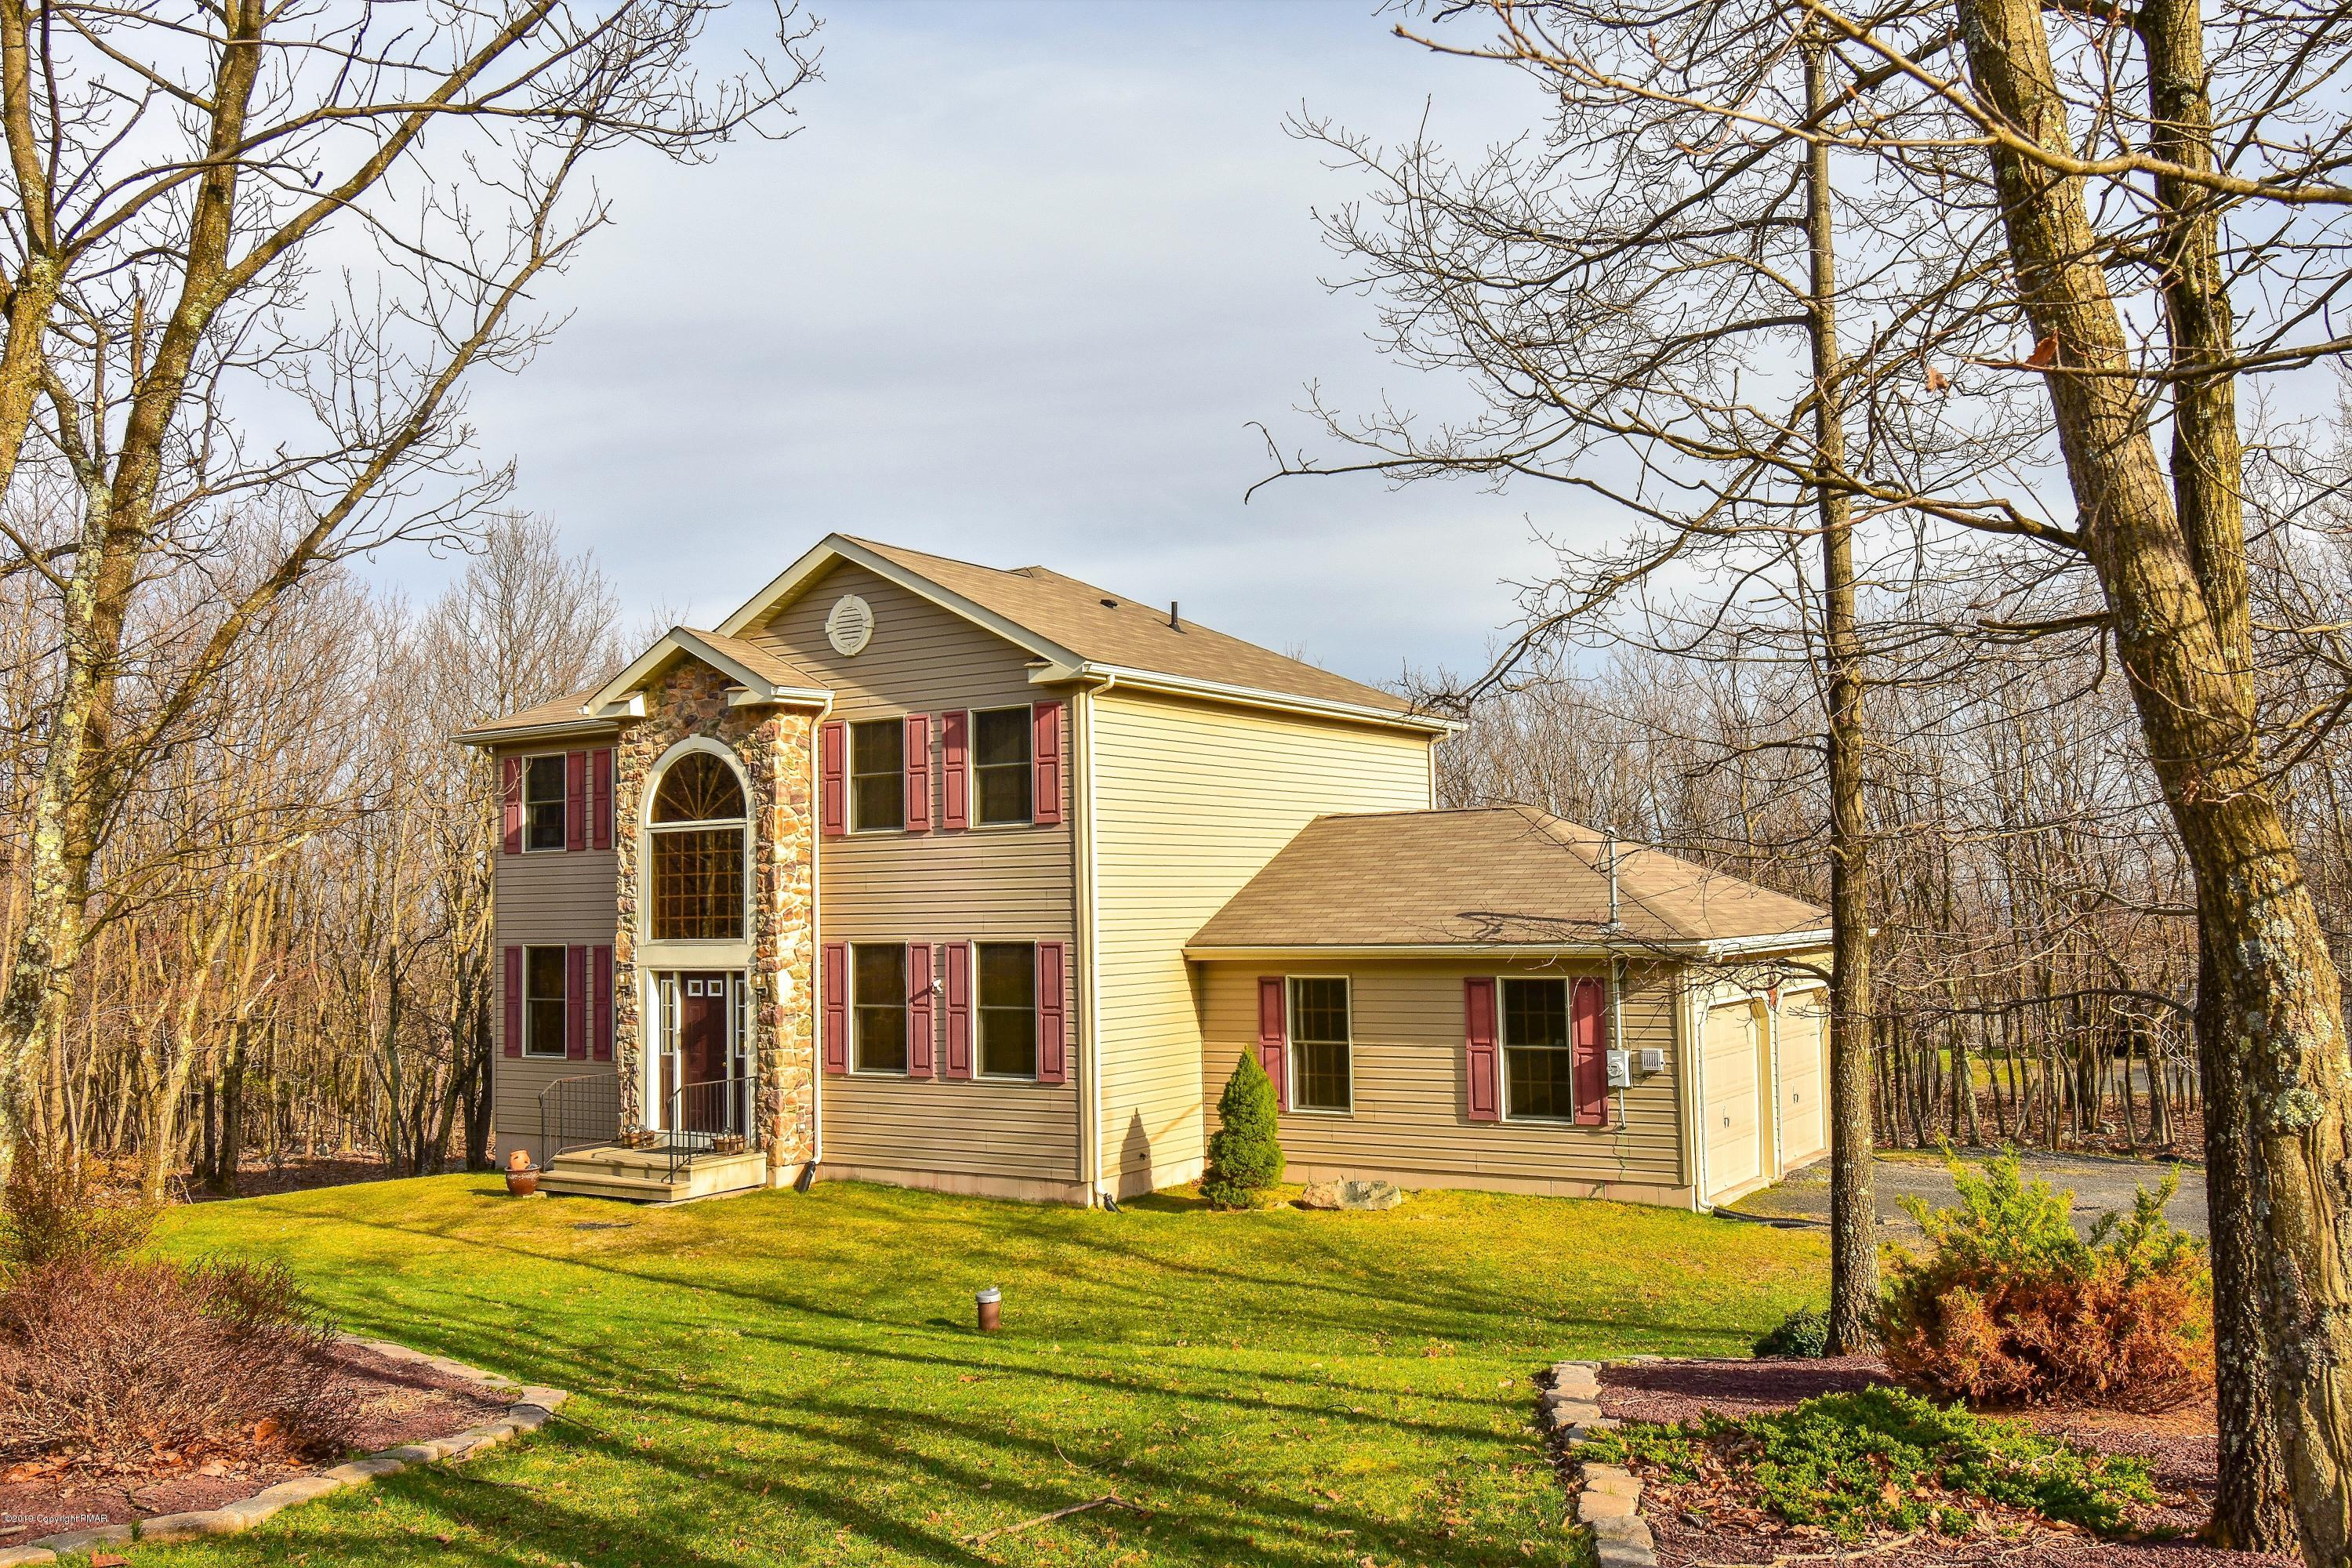 137 Long View Drive, Albrightsville, PA 18210